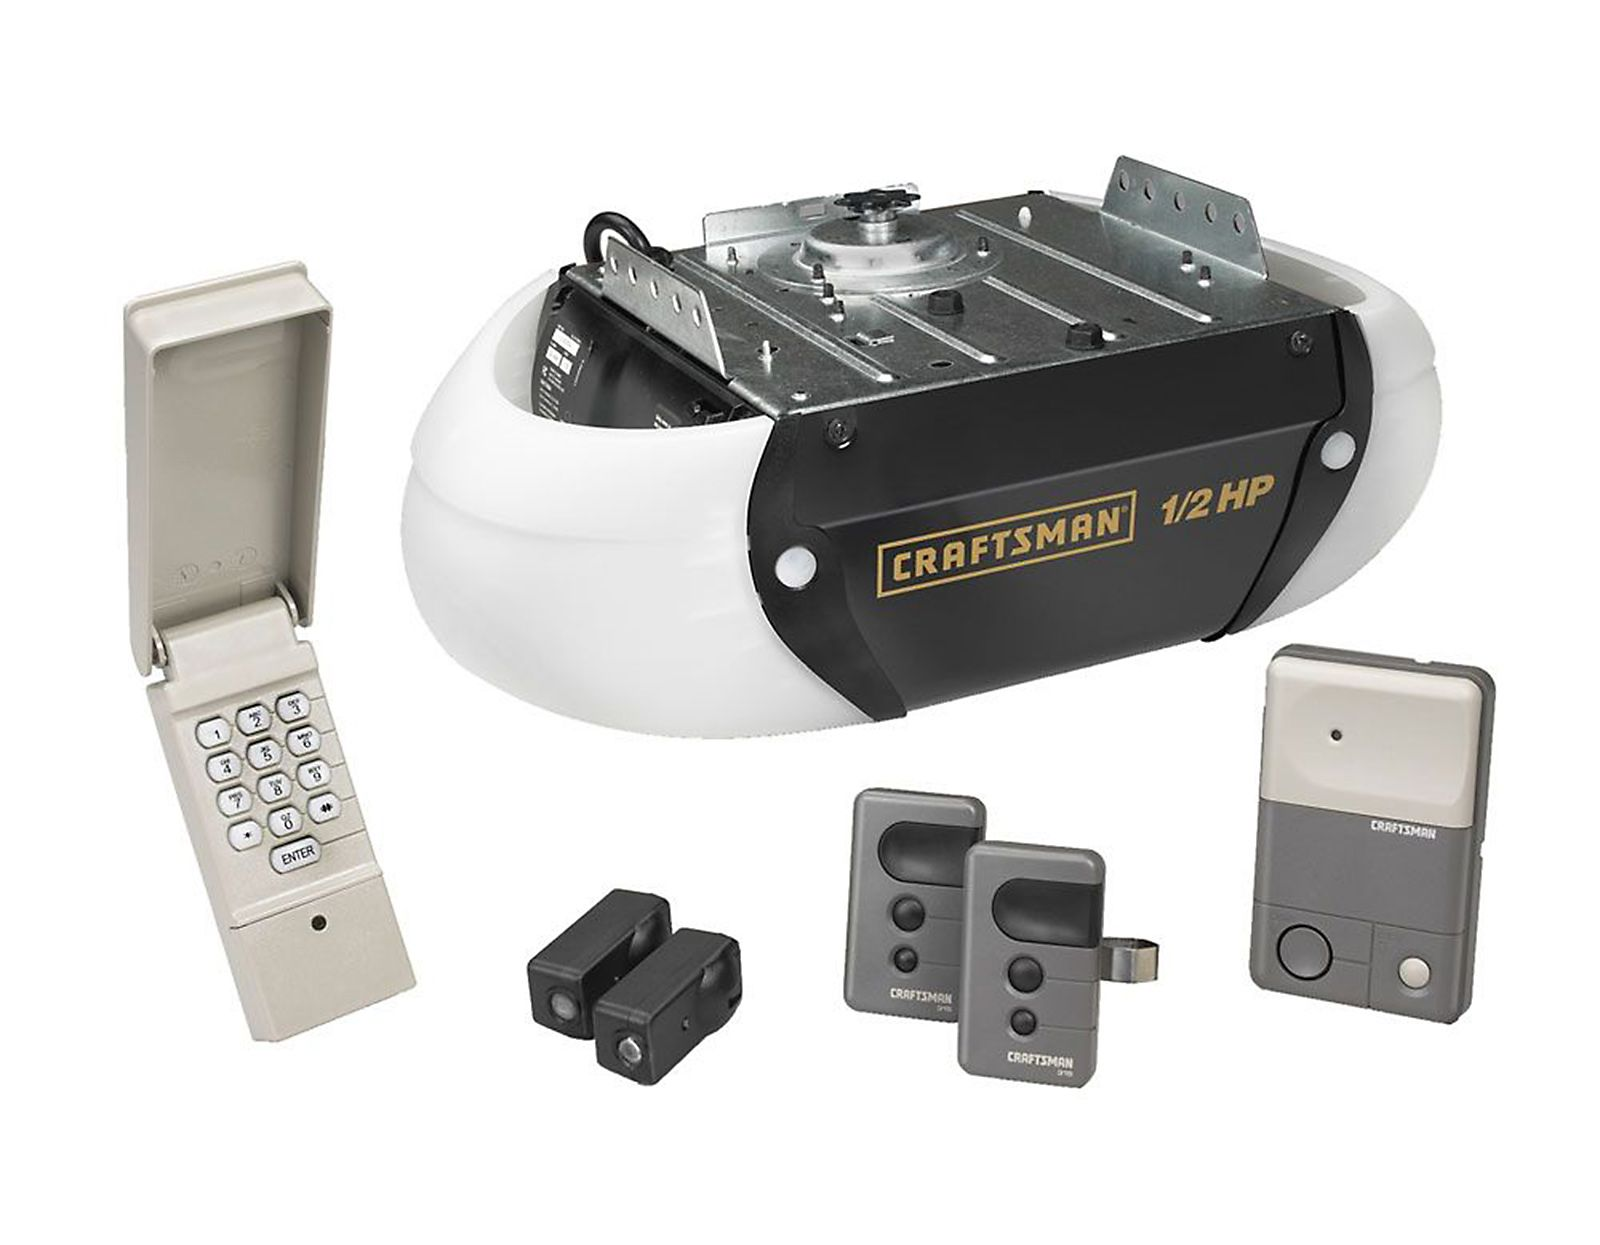 1 2 Hp Garage Door Opener Opens Only For You Come Home To A Wonderful Reception With Thi With Images Garage Door Opener Installation Garage Door Opener Repair Garage Doors